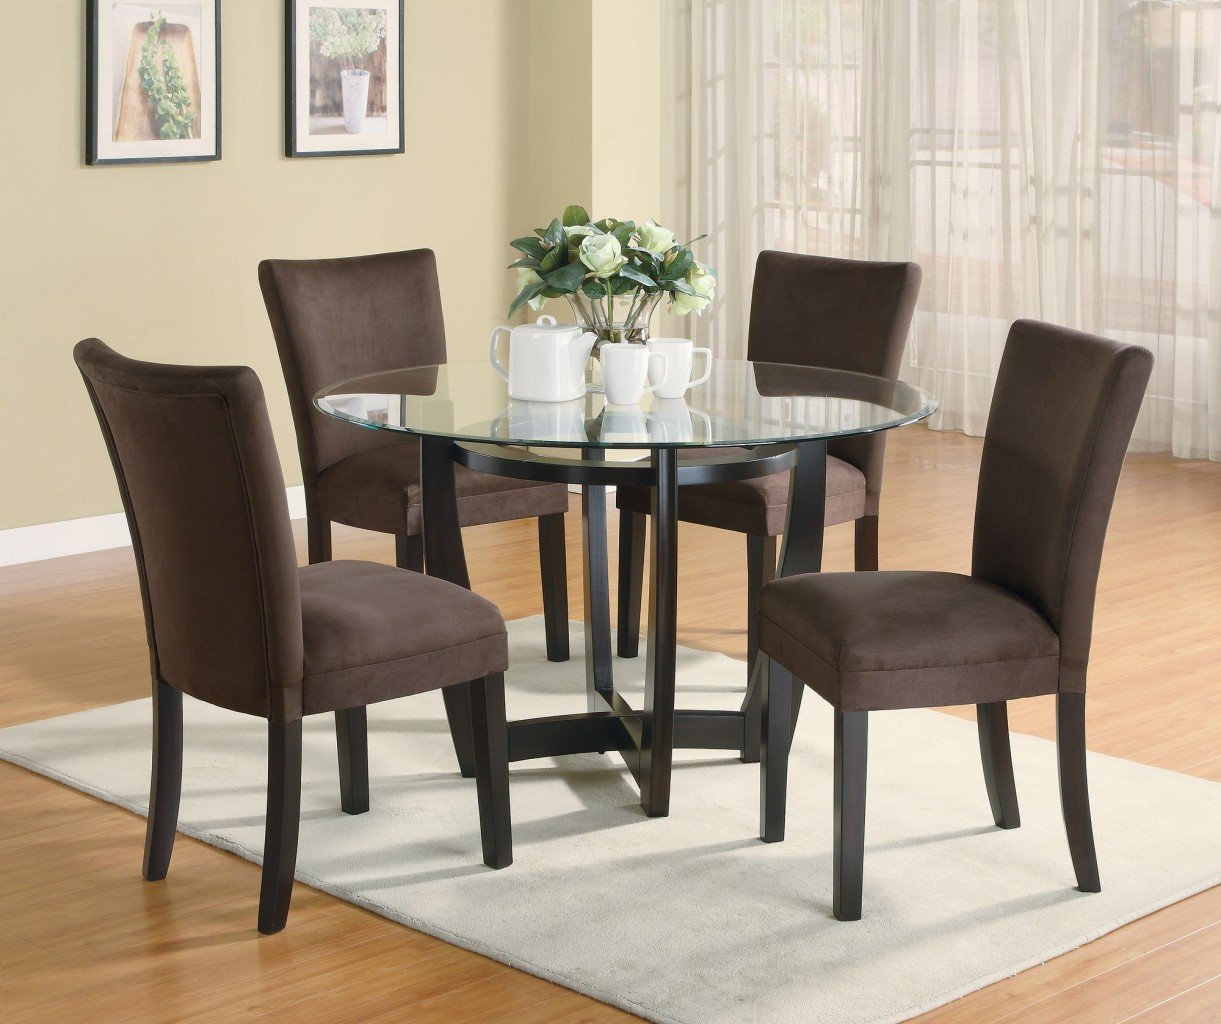 Cheap dining room table sets home furniture design - Dining room set cheap ...